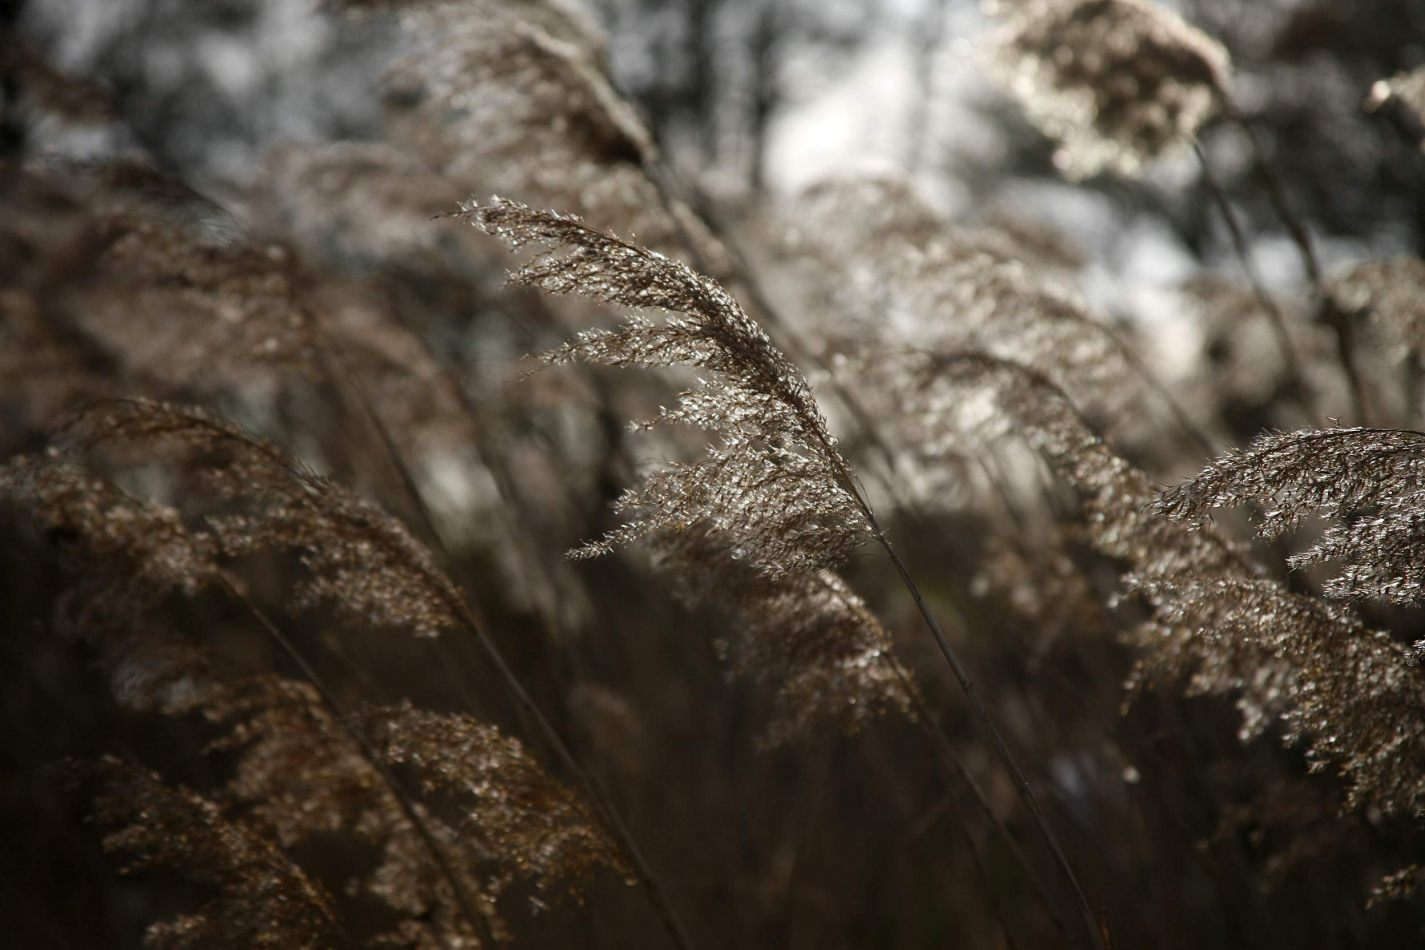 Anthony Ellis Photography: Silent Afternoons - Light Through Reeds